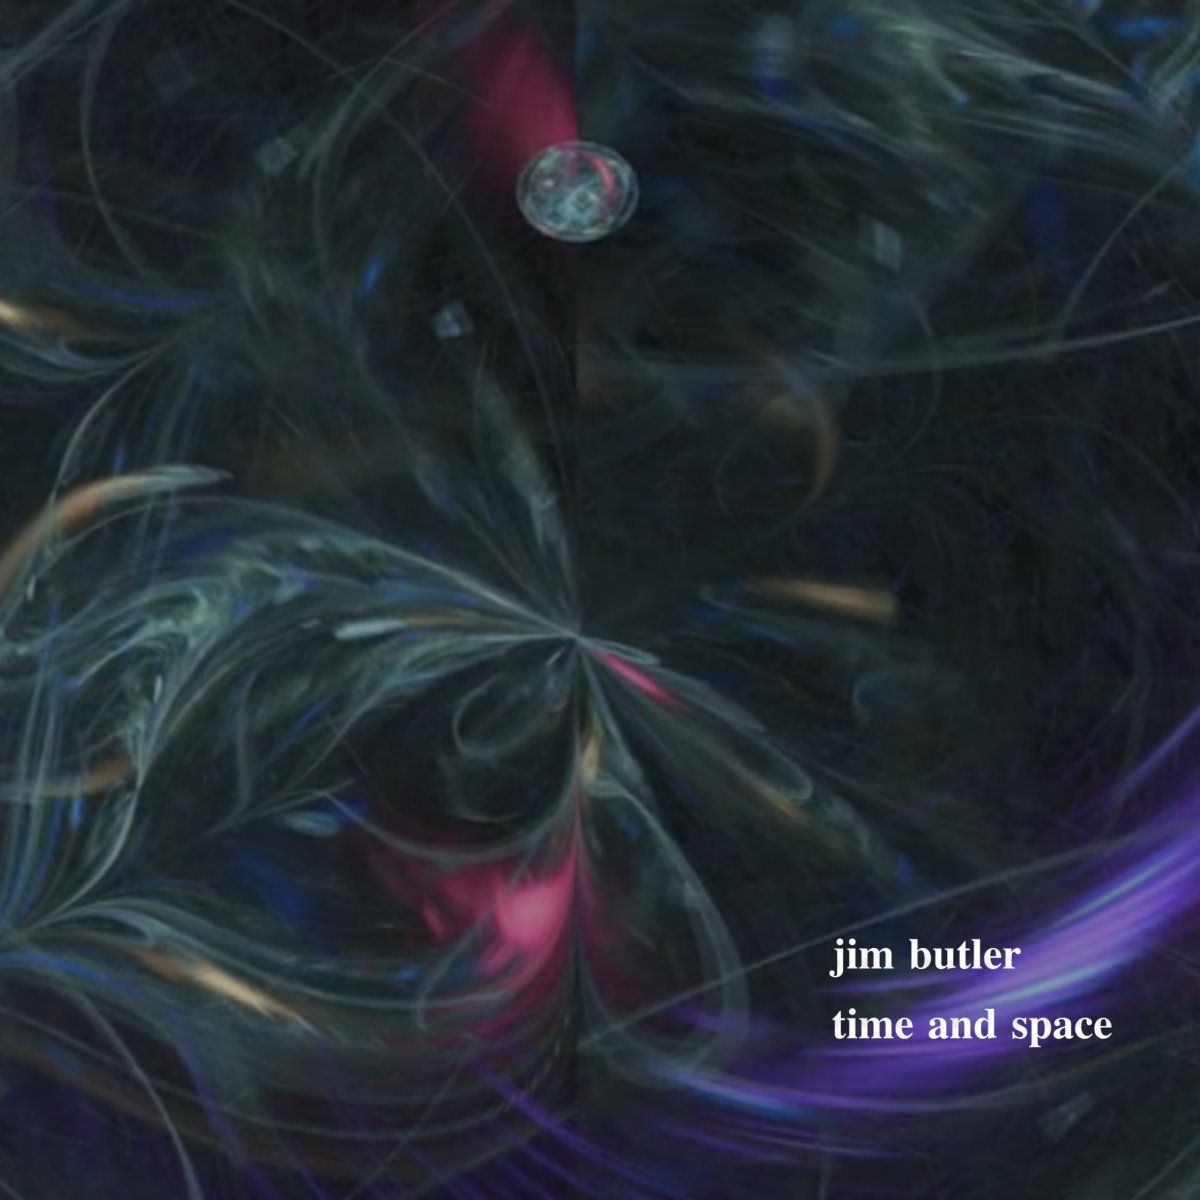 Space and Time by Jim Butler